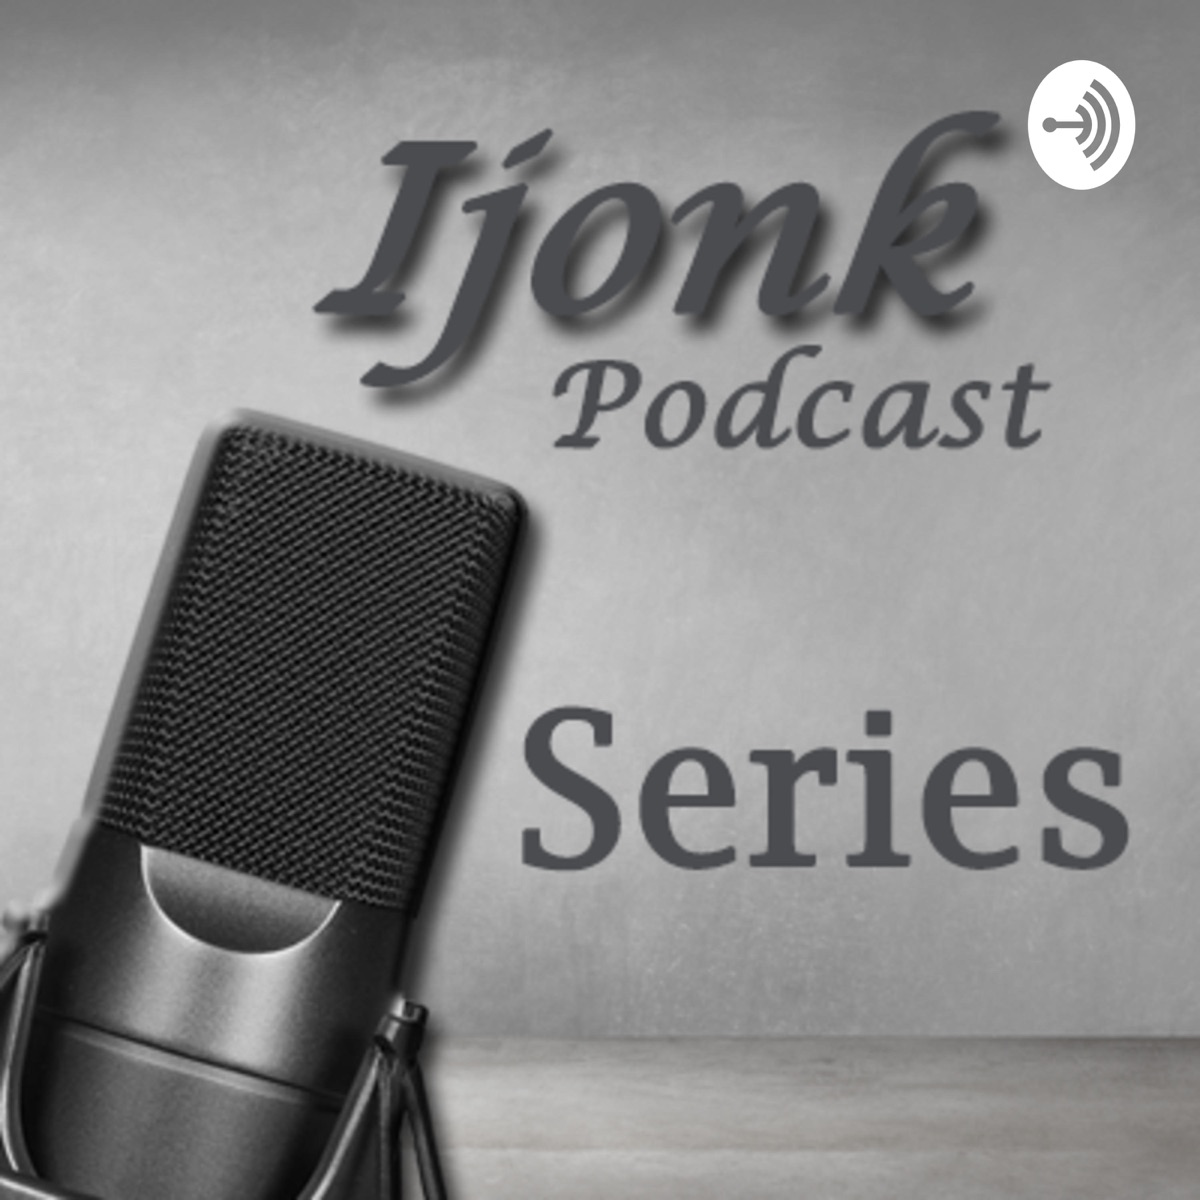 Ijonk Podcast - Series